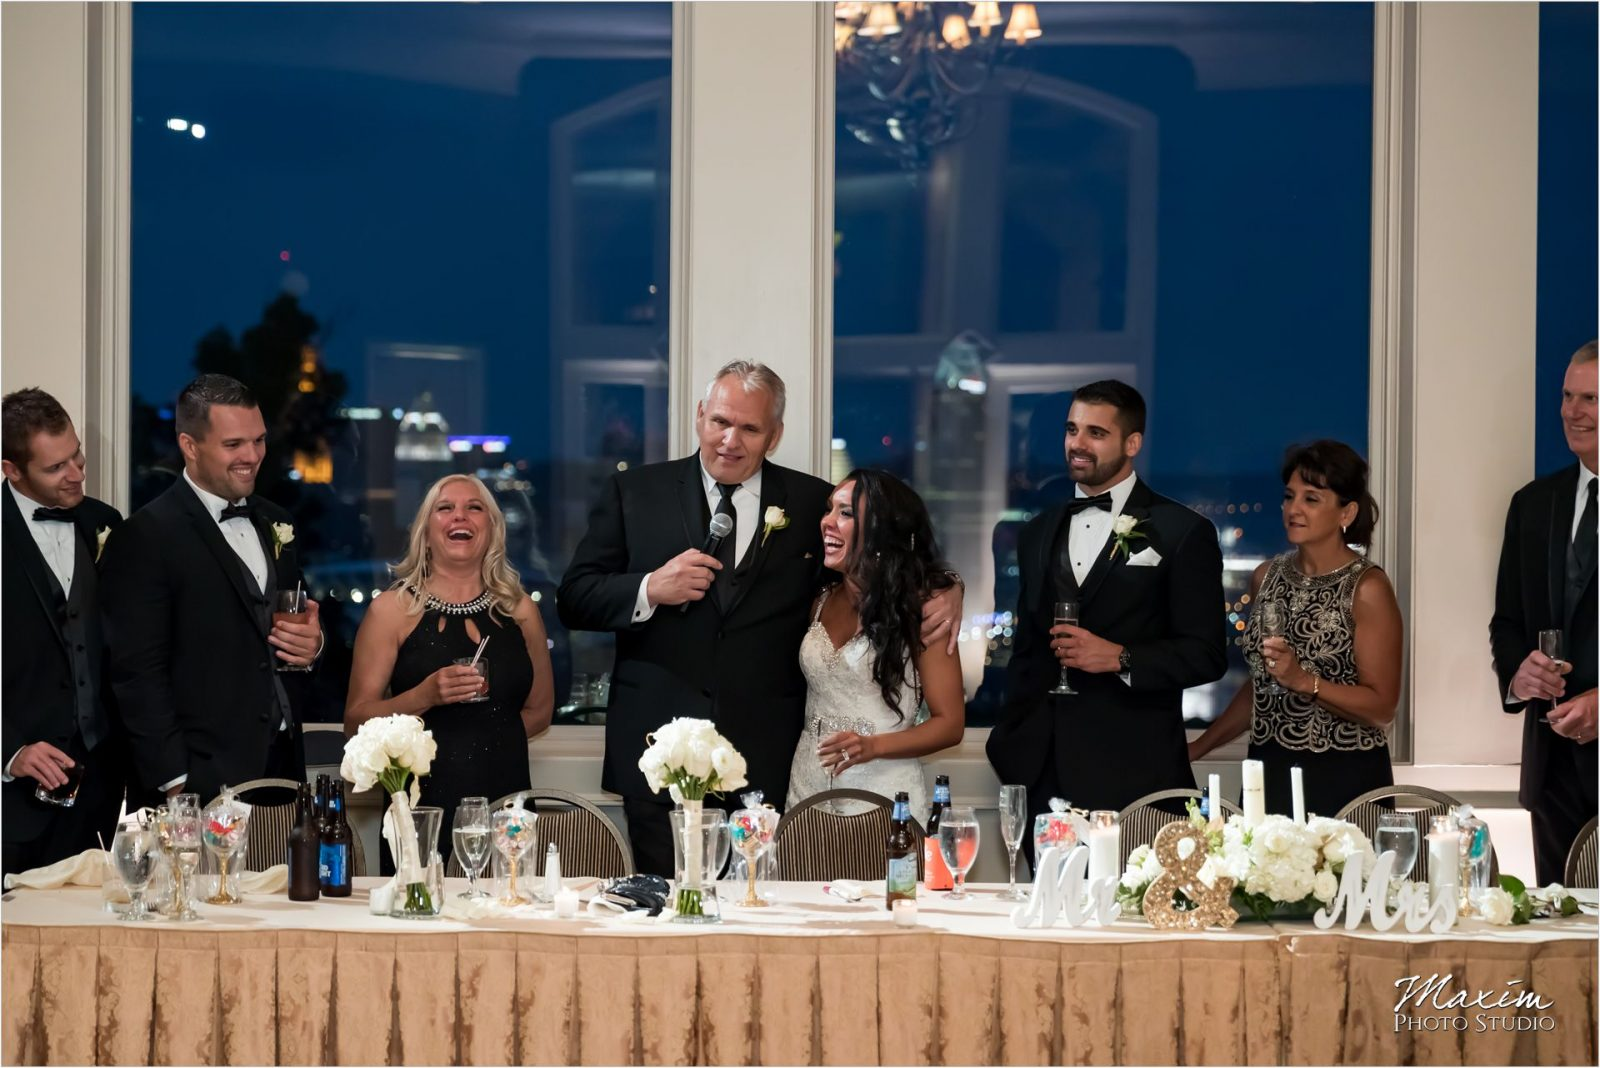 Drees Pavilion Covington Kentucky Wedding Reception signature toasts